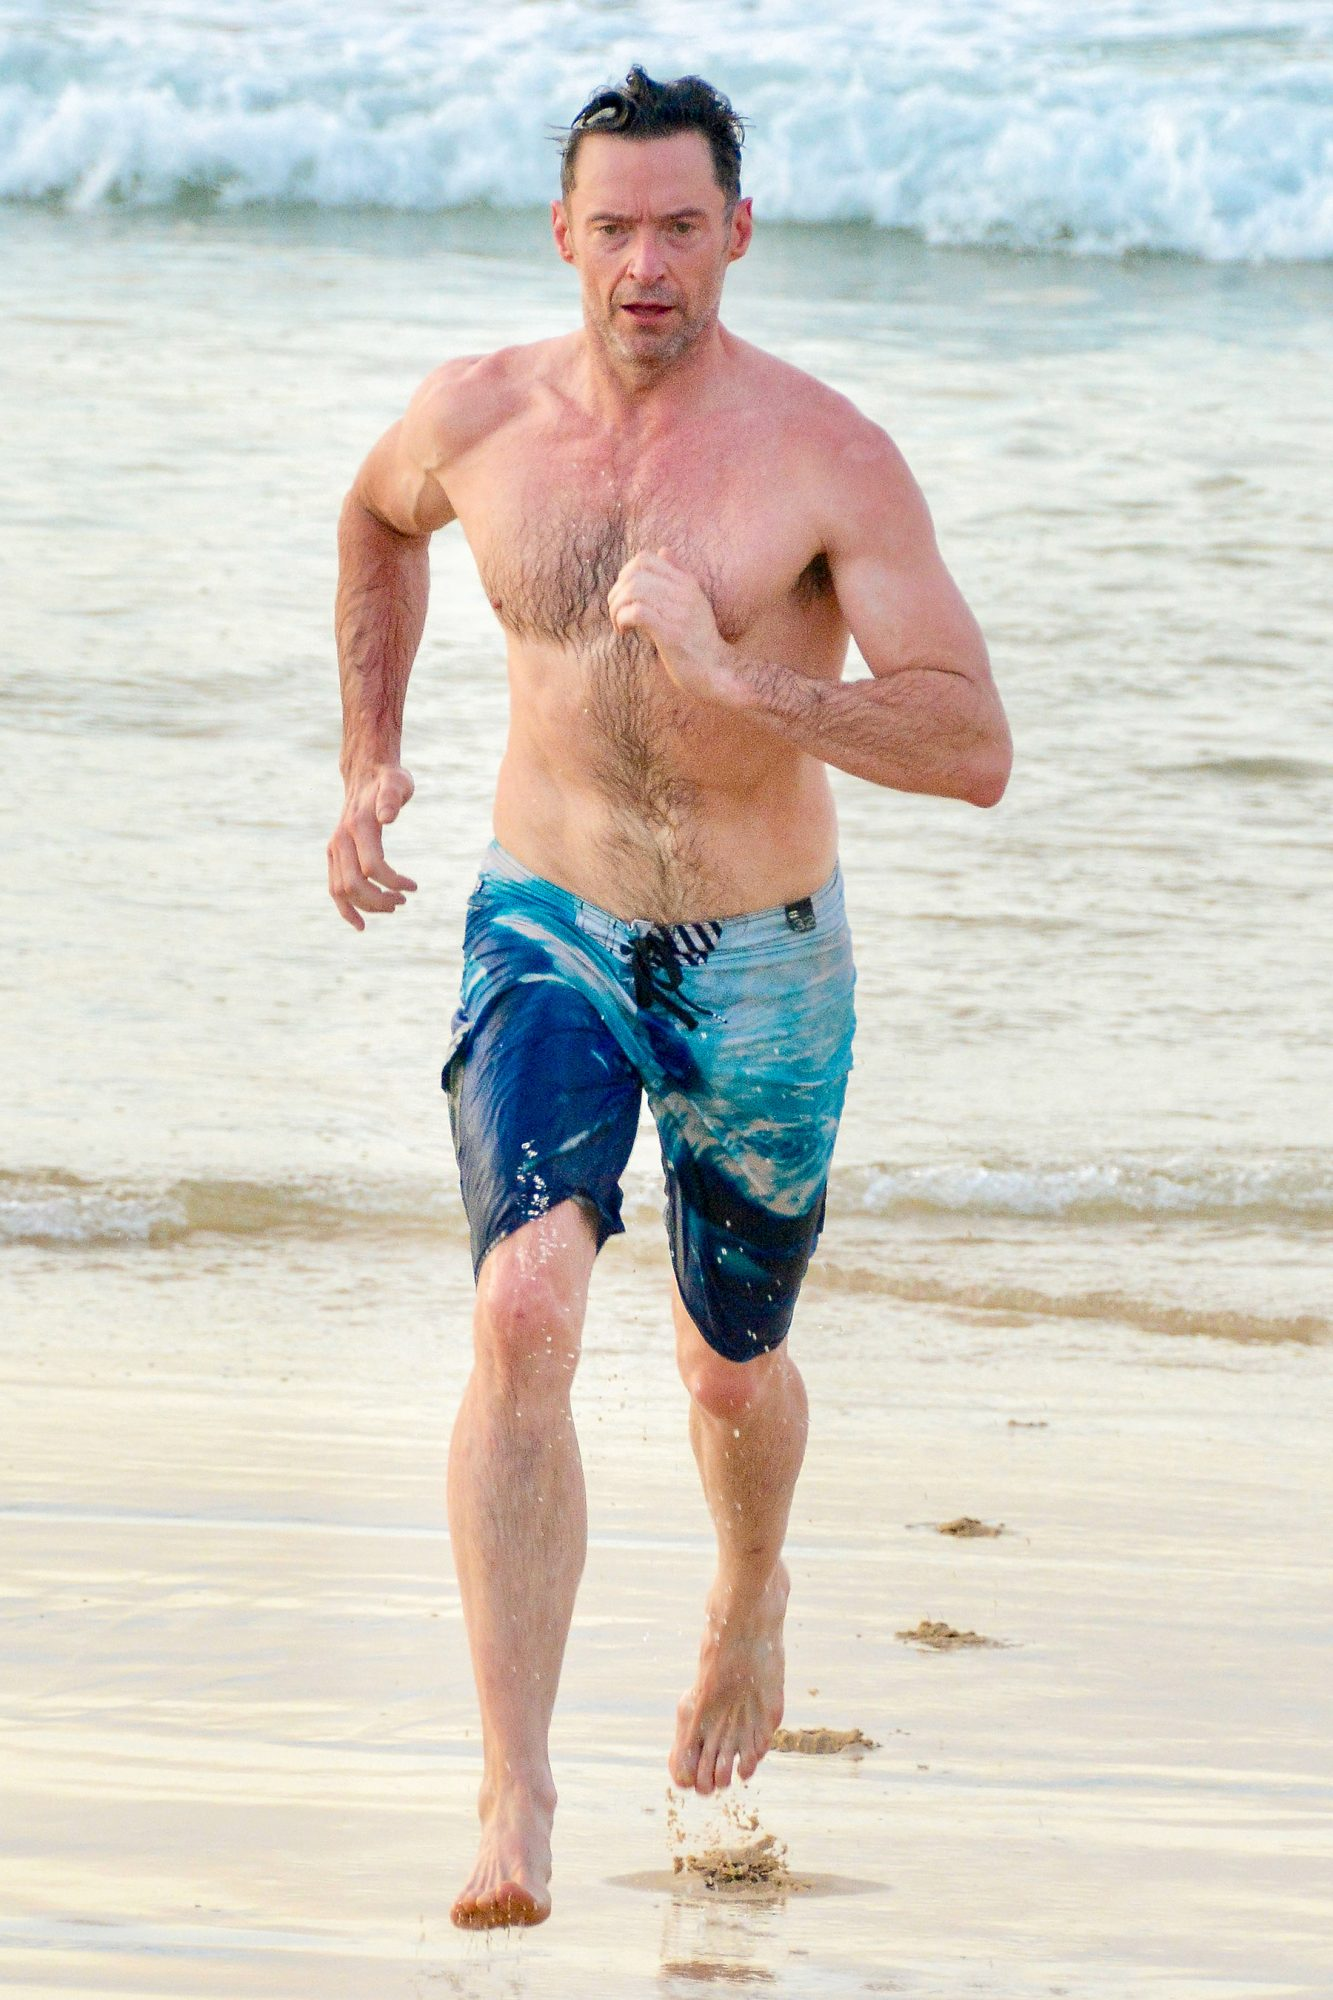 EXCLUSIVE: *NO MAIL ONLINE* Hugh Jackman Puts On His 'Greatest Show' At Bondi Beach, As He Heads Out For An Early Morning Swim